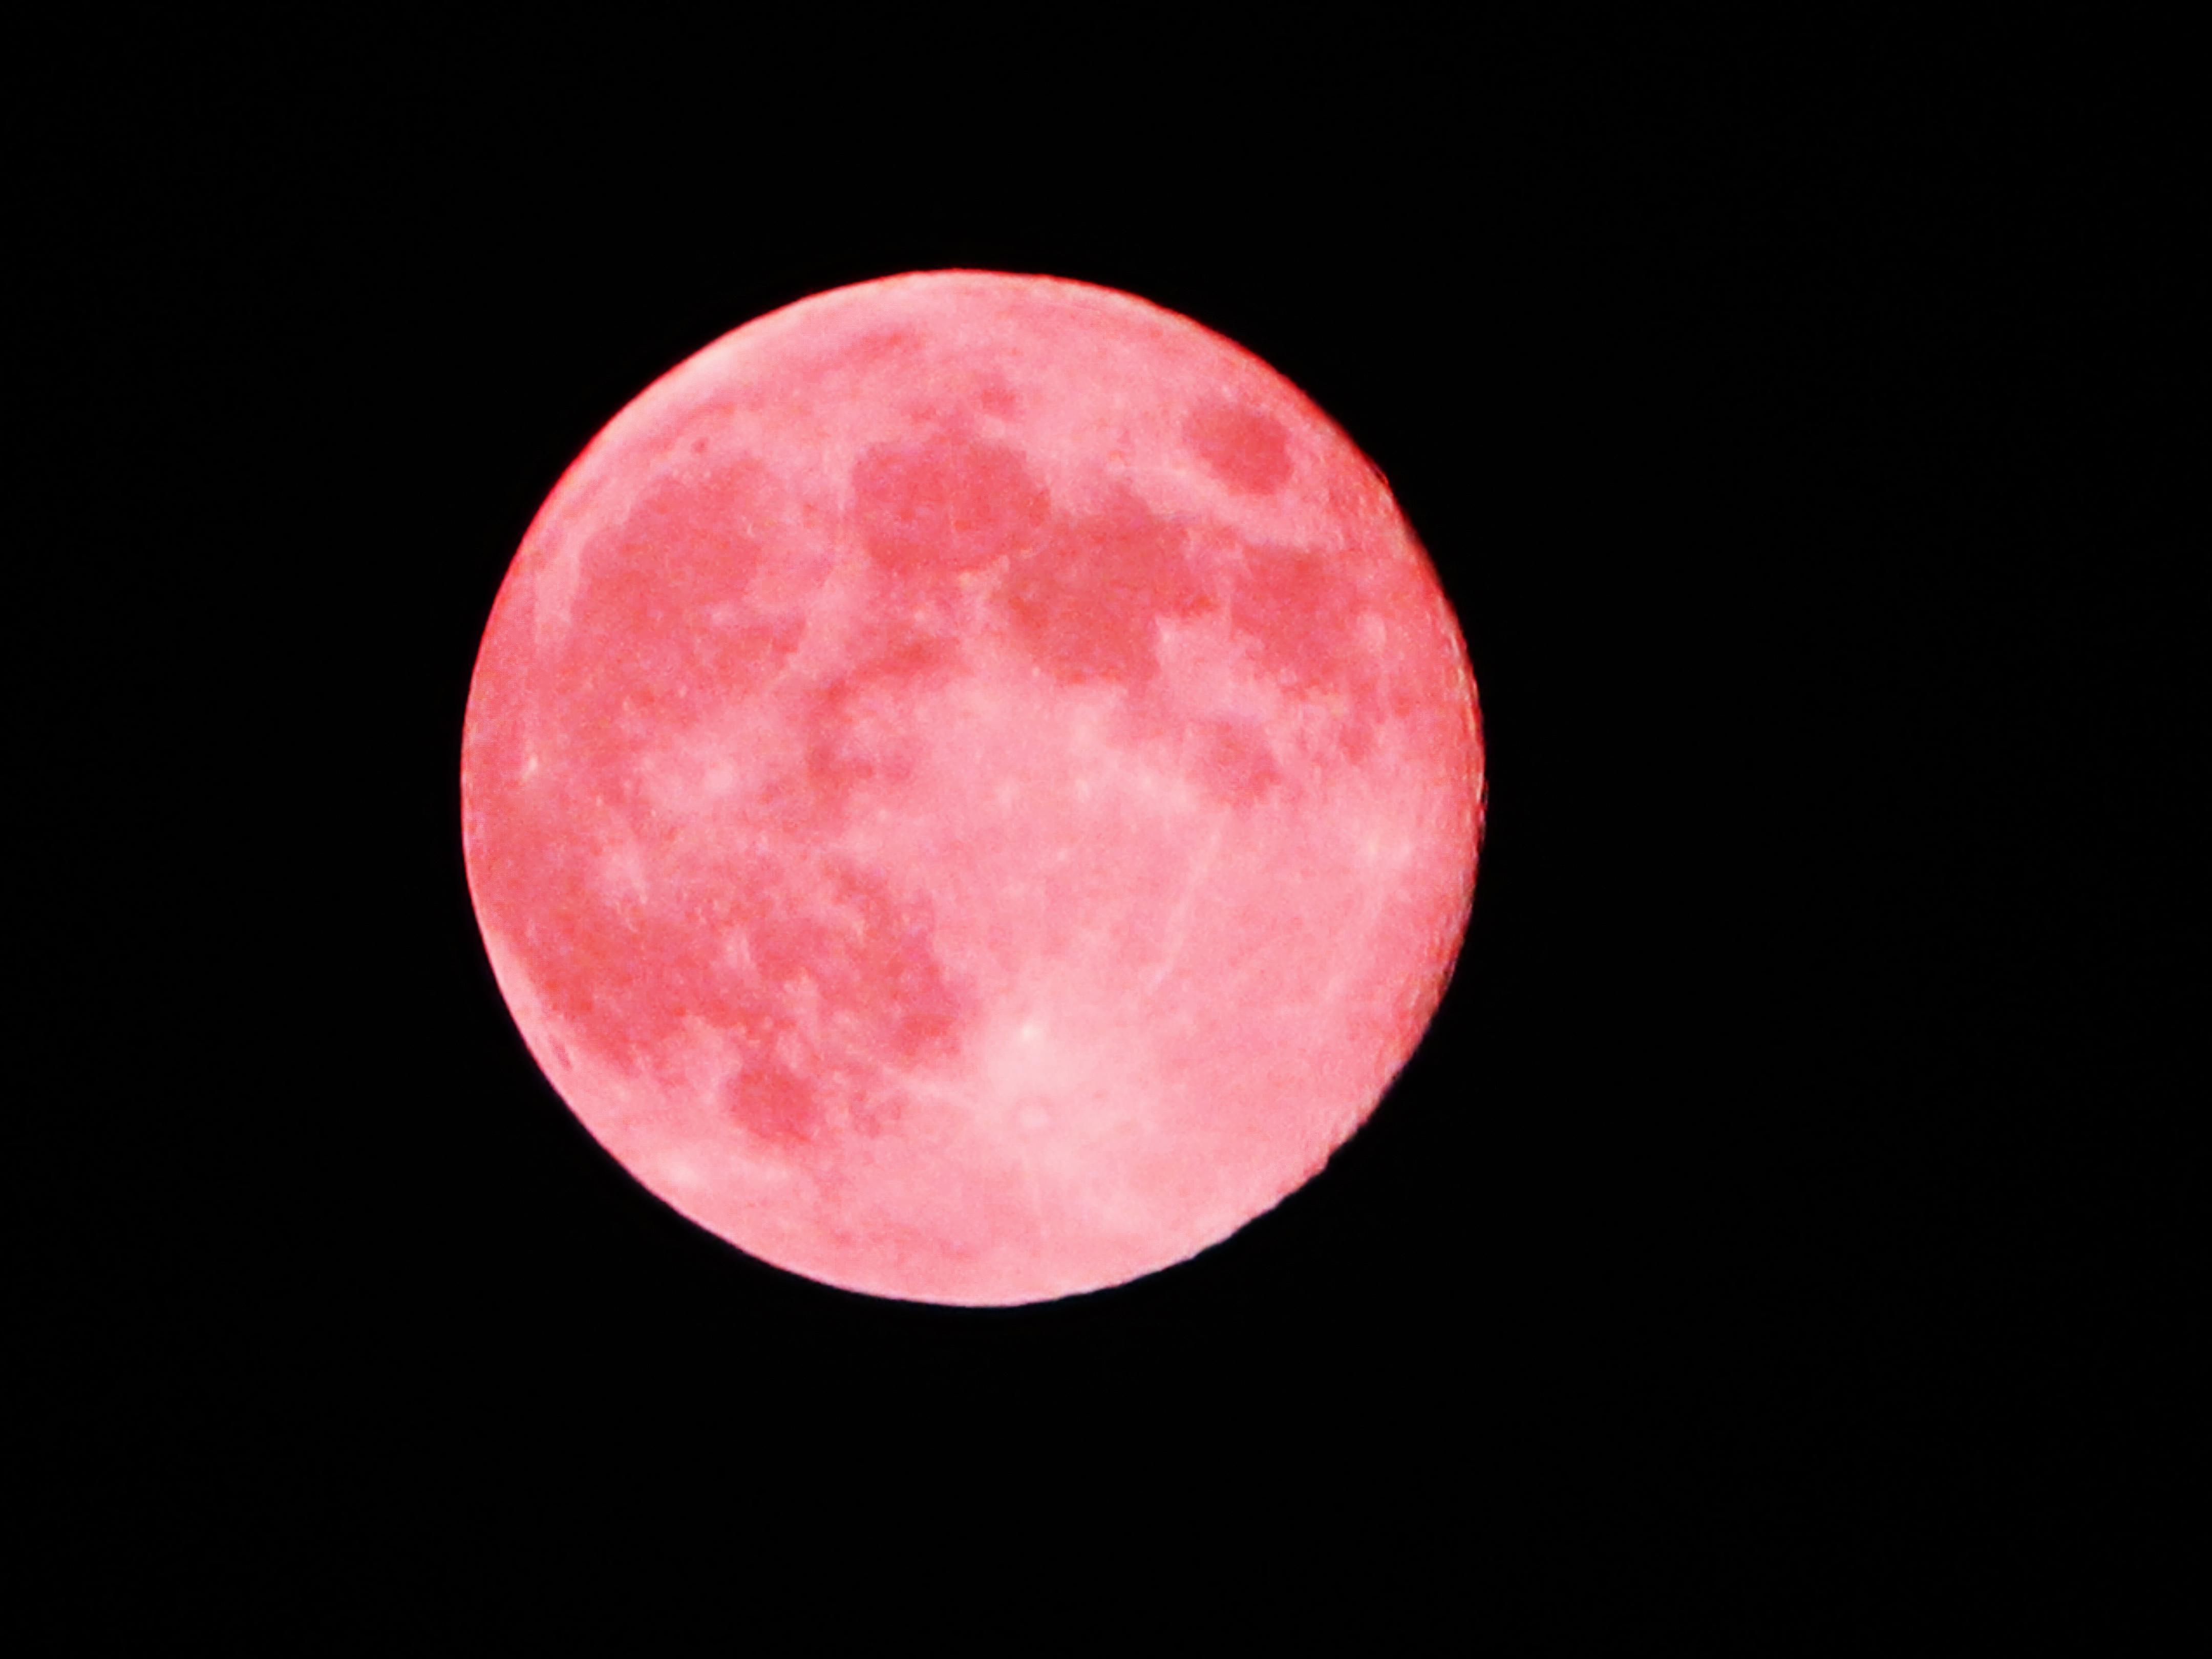 Moon Phase: Full Moon/Pink Moon